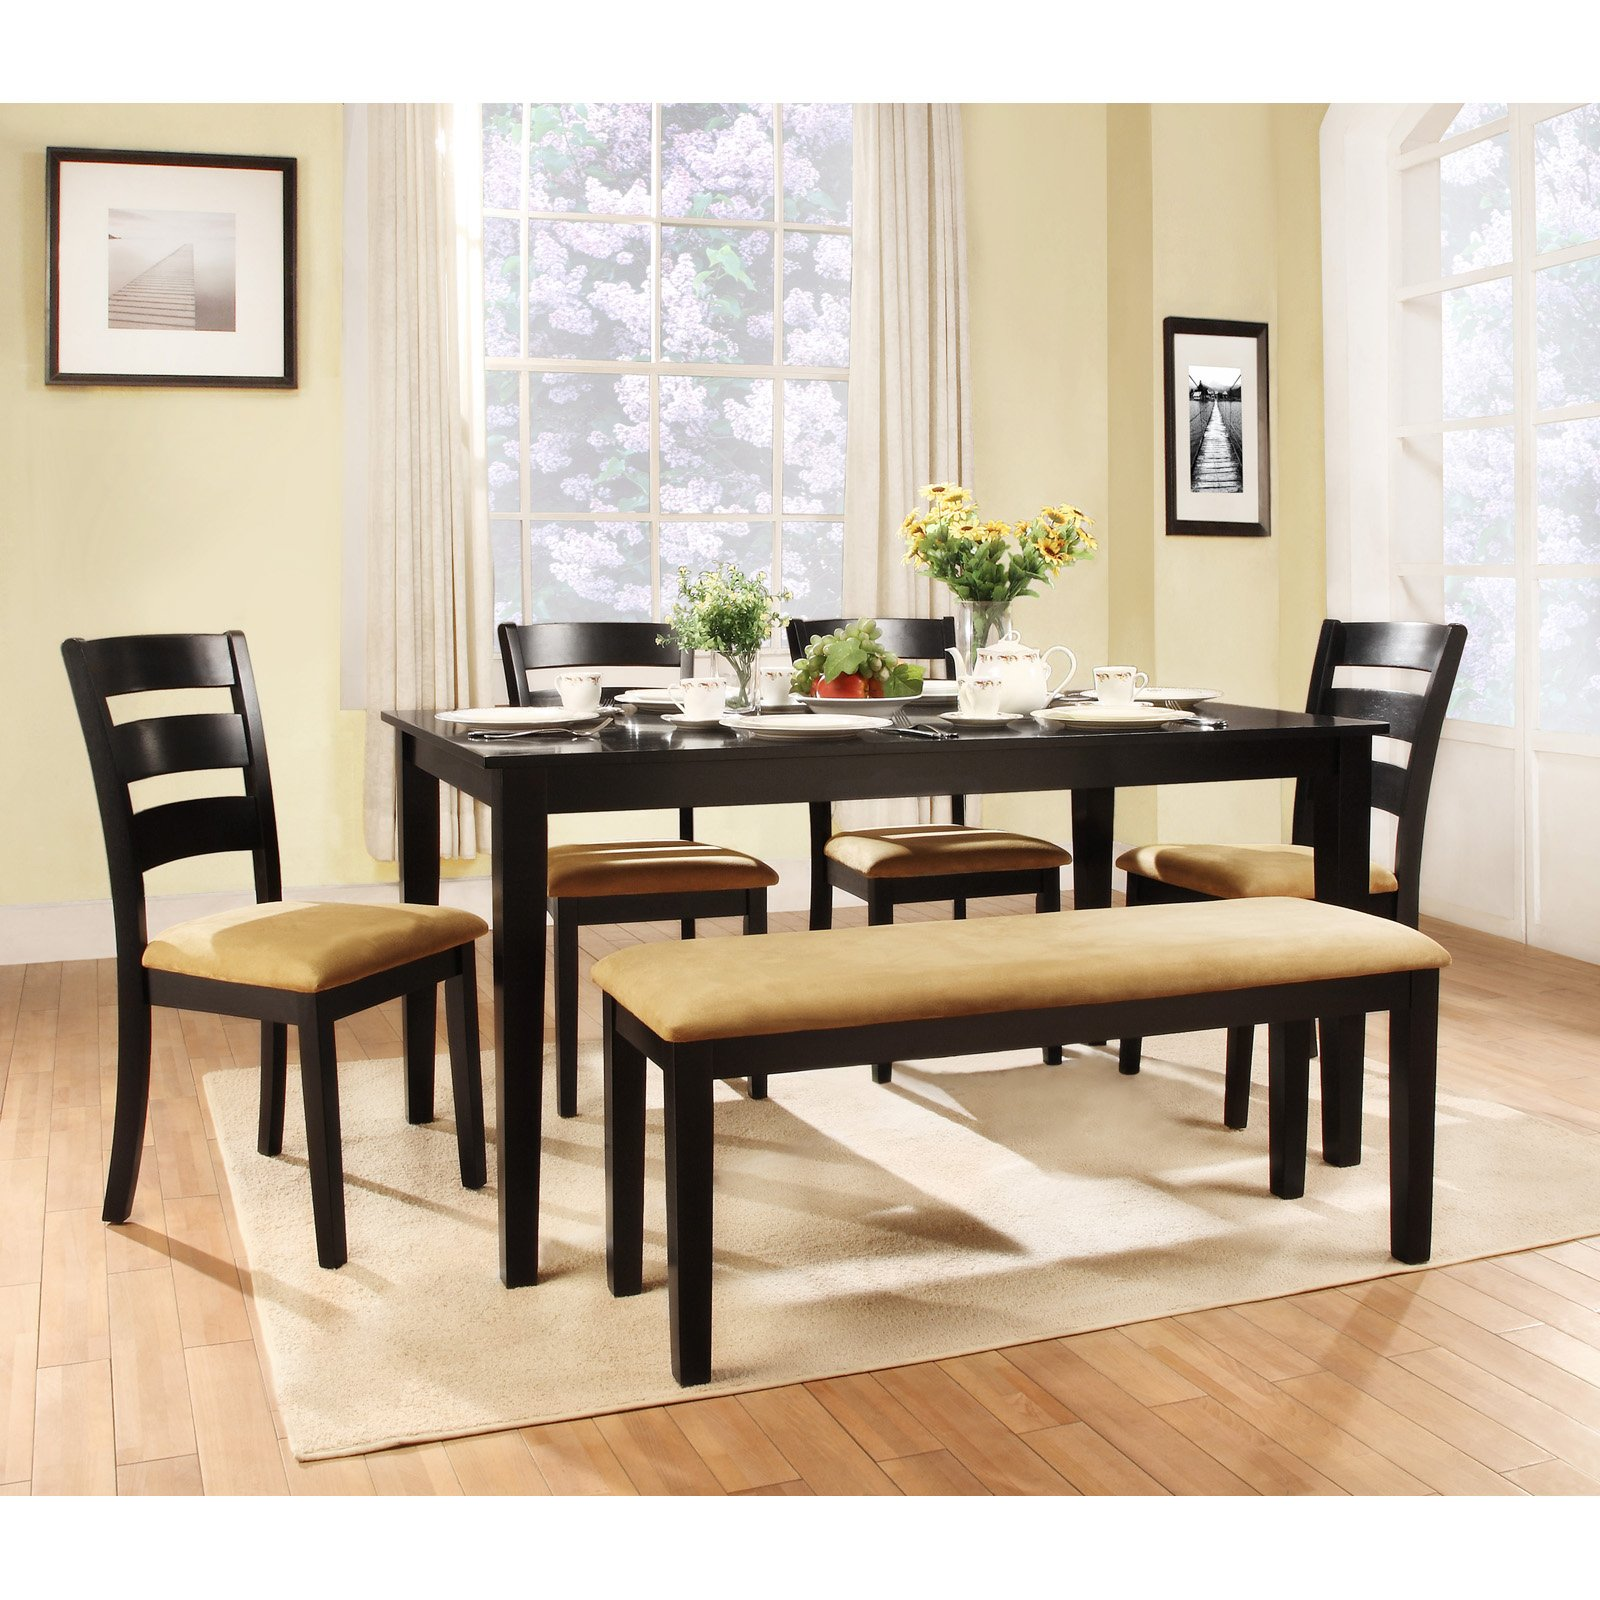 Modern bench style dining table set ideas homesfeed for Dining room table and chair ideas